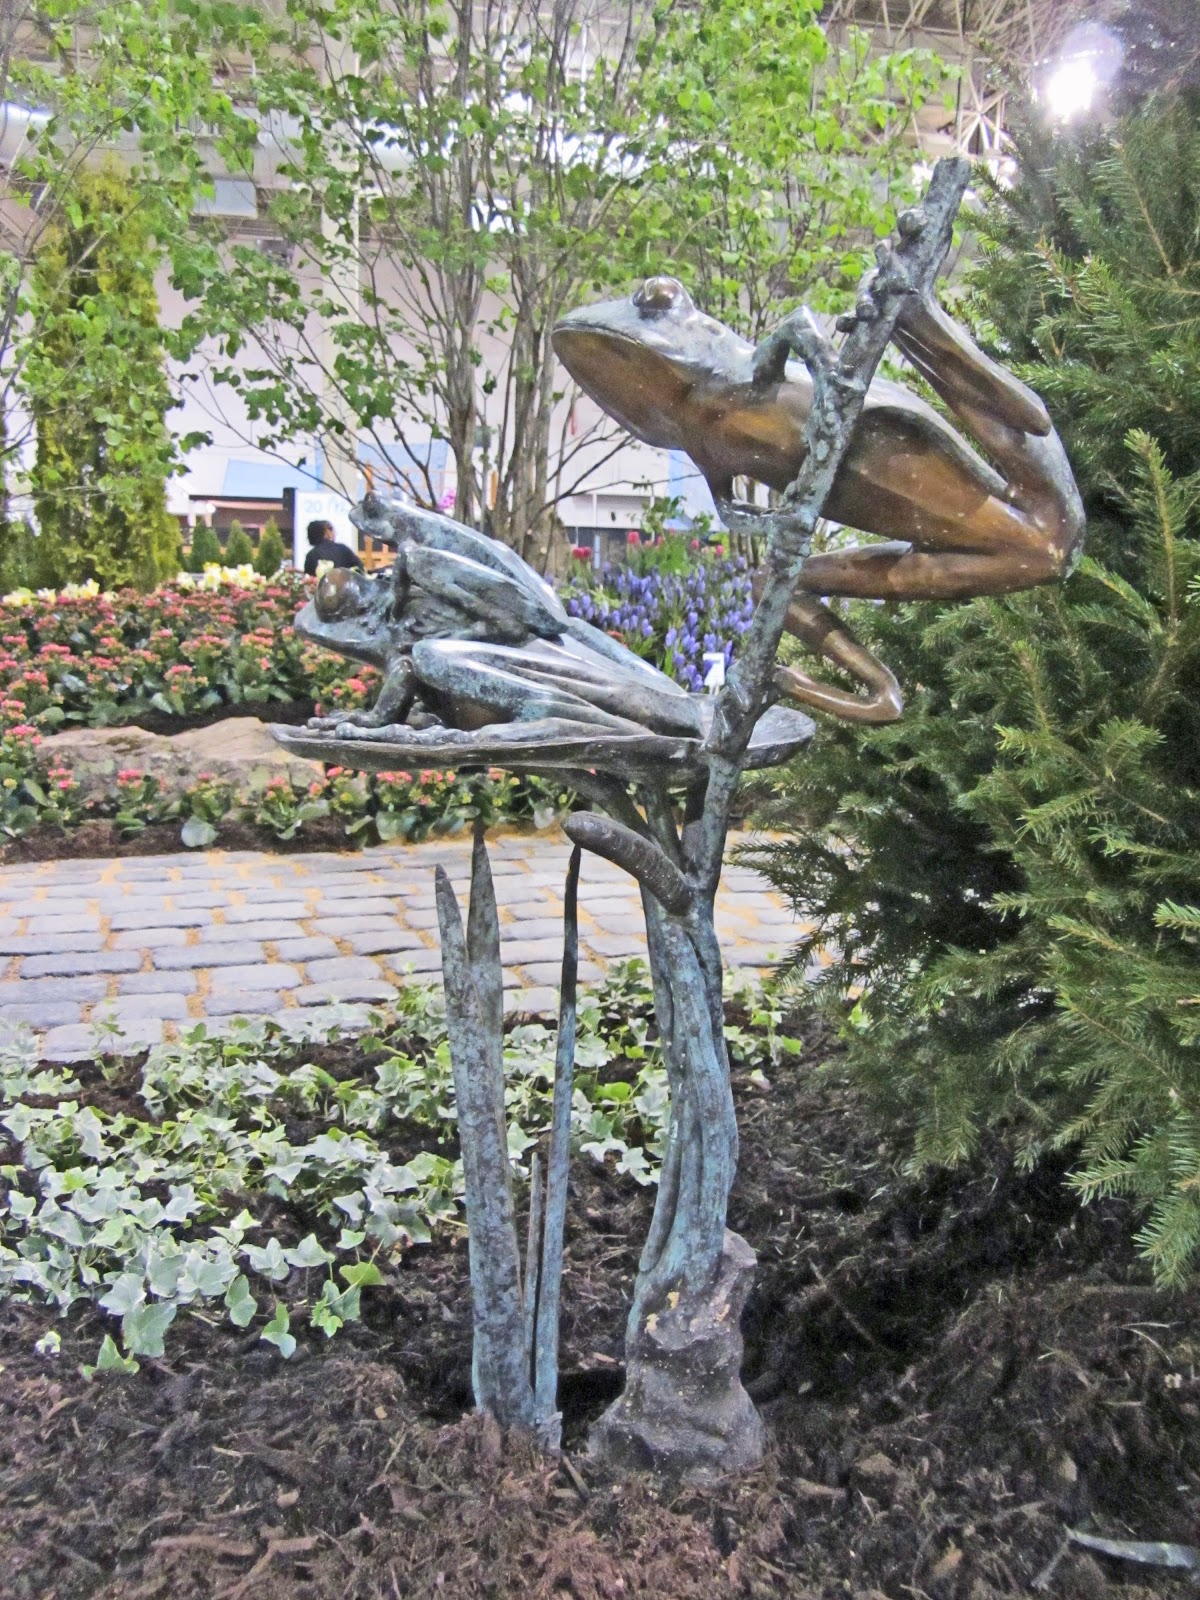 Homemade garden art - Try To Incorporate Some Sculpture Into Your Garden This Year Something Homemade Garage Sale Found Or From One Of The Outlet Stores